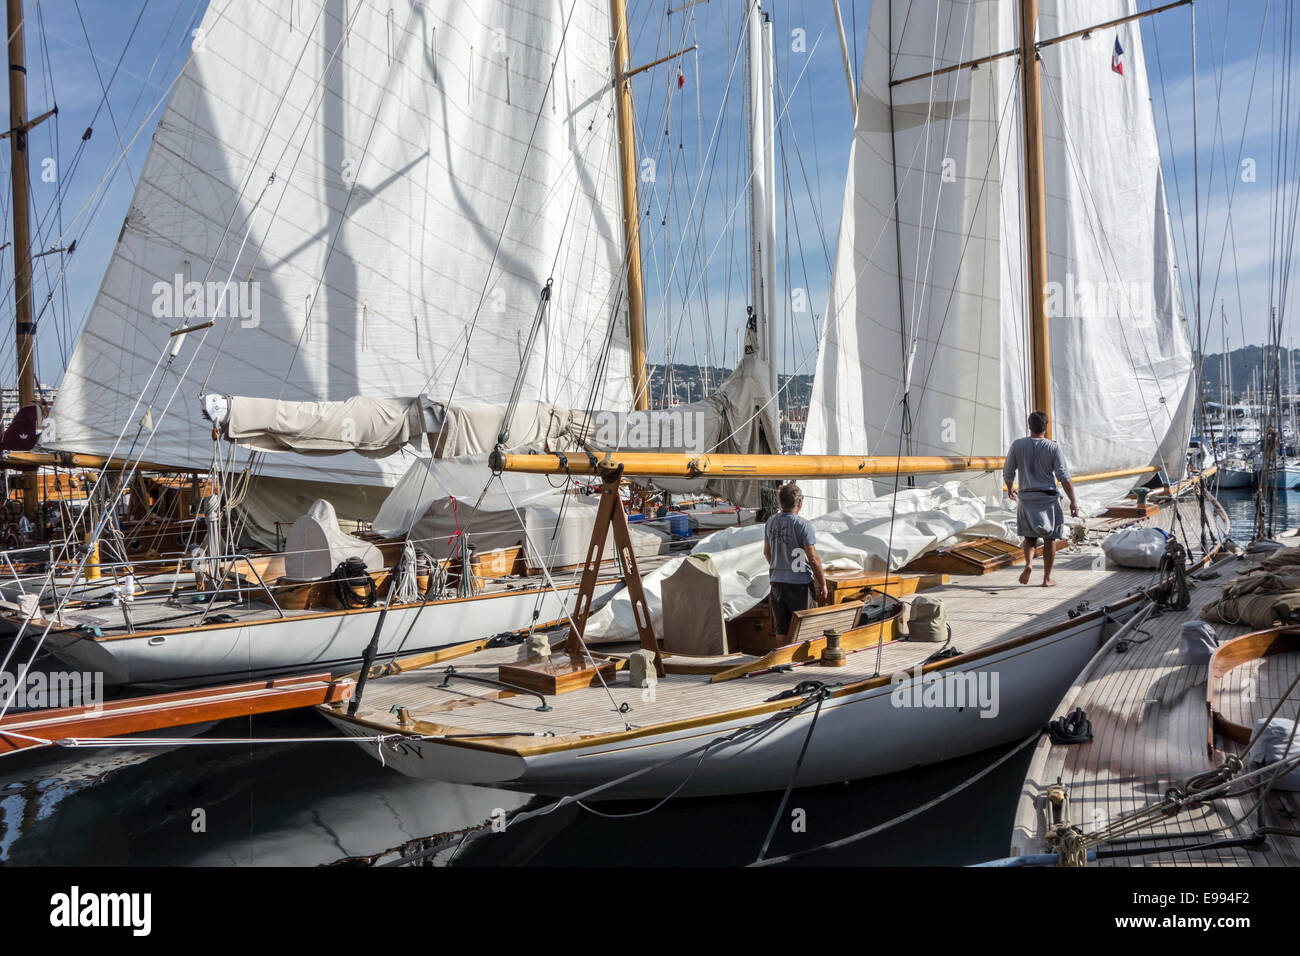 Yachtsmen on board of sailing boat in the harbour at Cannes, French Riviera, Côte d'Azur, Alpes-Maritimes, - Stock Image